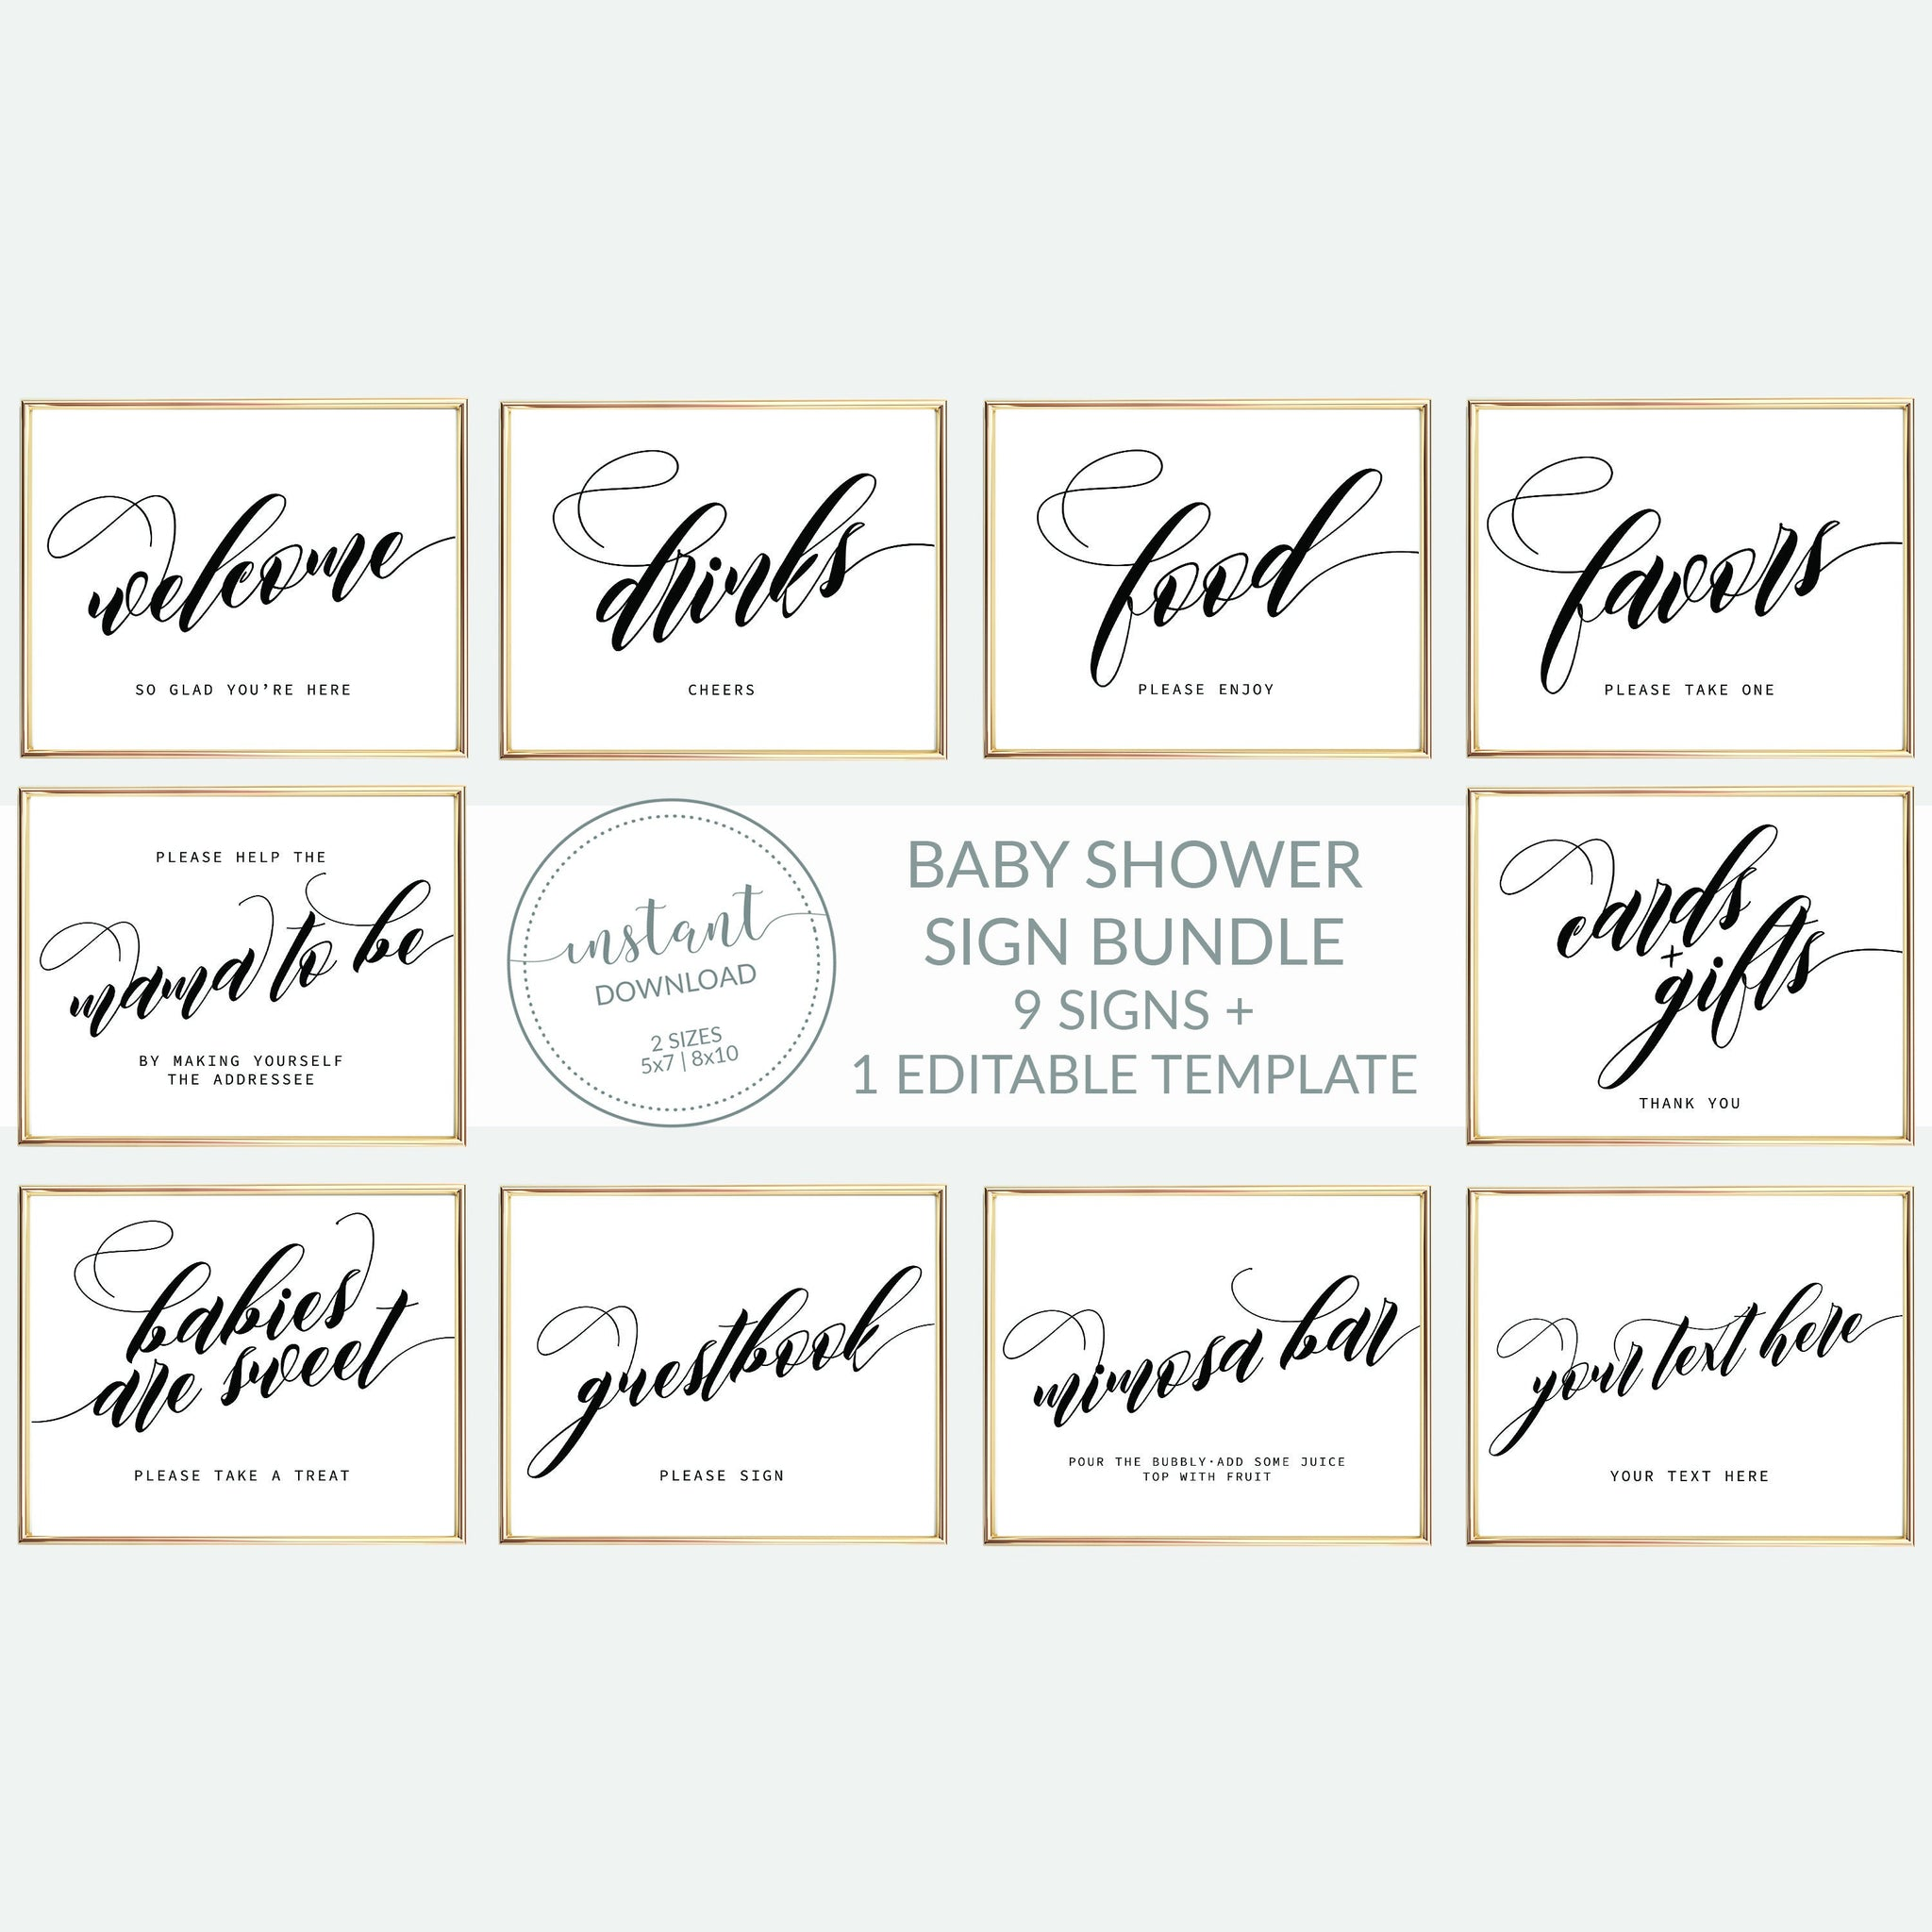 Printable Baby Shower Signs Set, Minimalist Baby Shower Sign Template, INSTANT DOWNLOAD, Black and White Decorations Supplies - SFB100 - @PlumPolkaDot